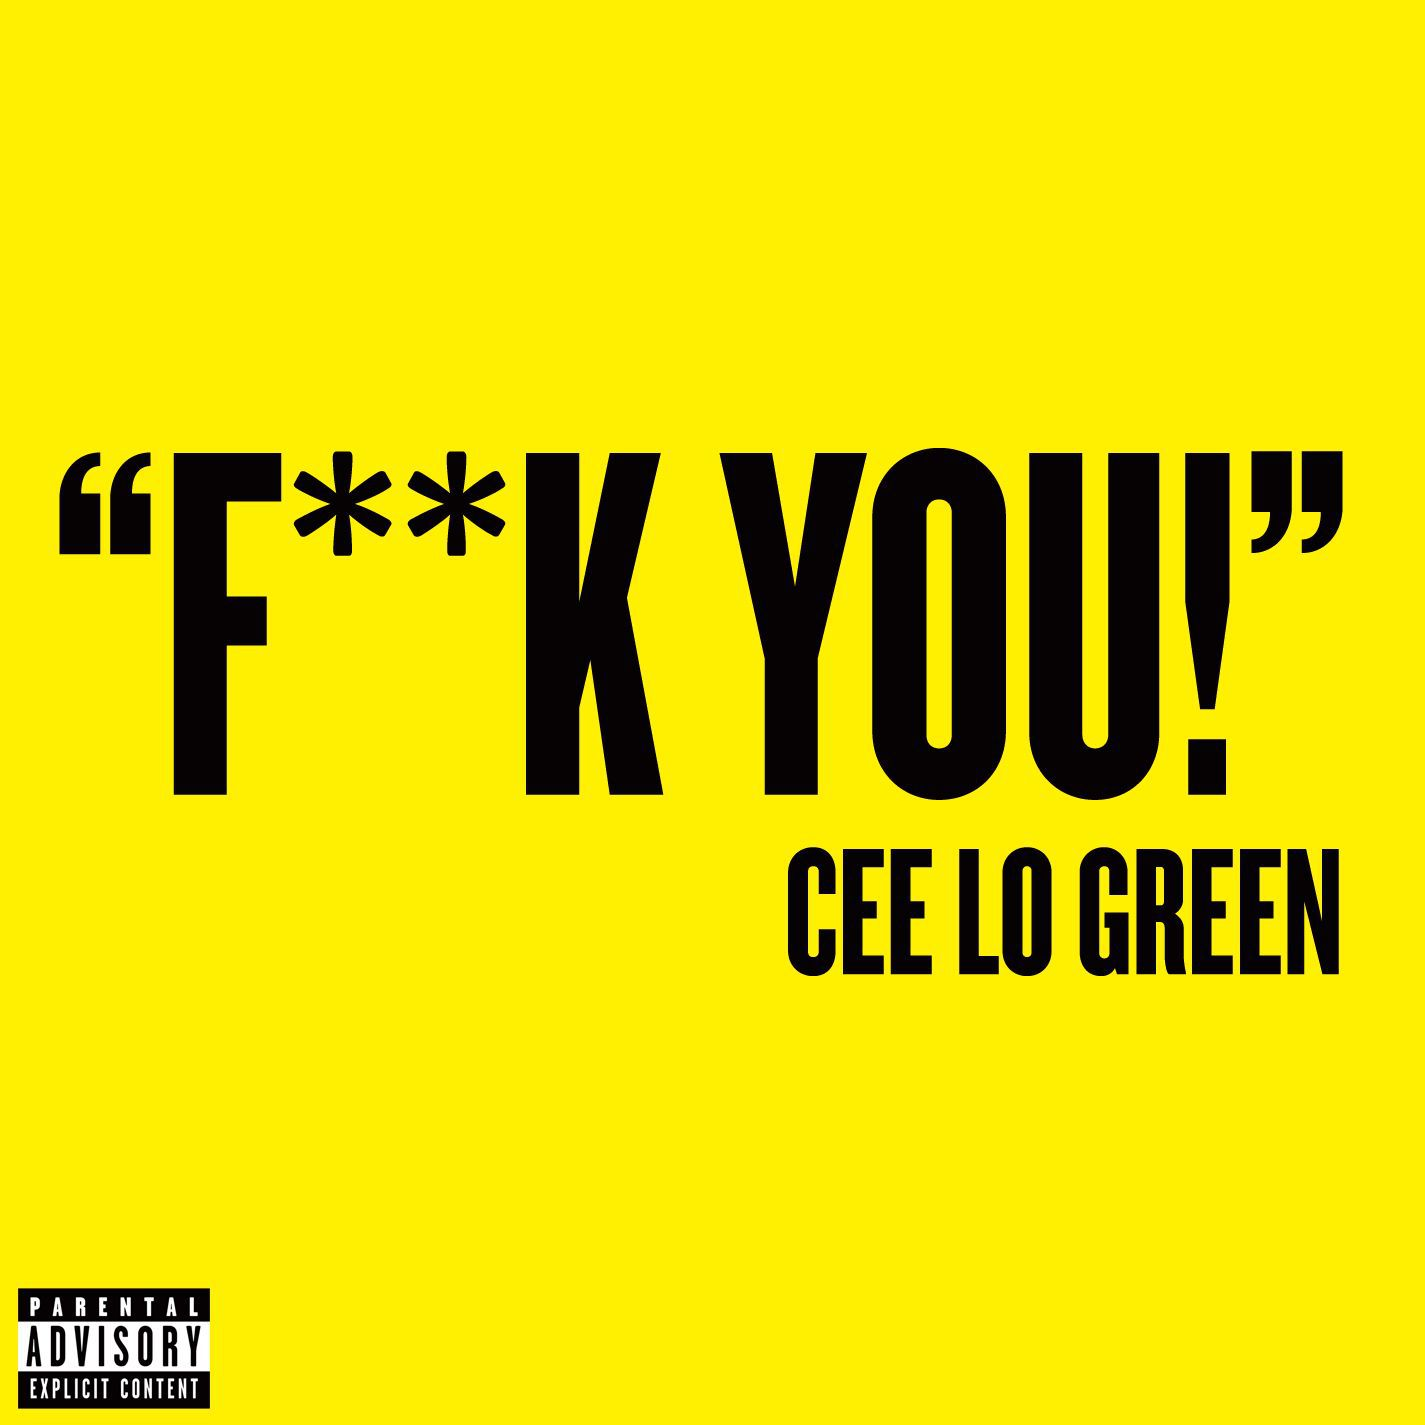 Cee Lo Green - F**k You!